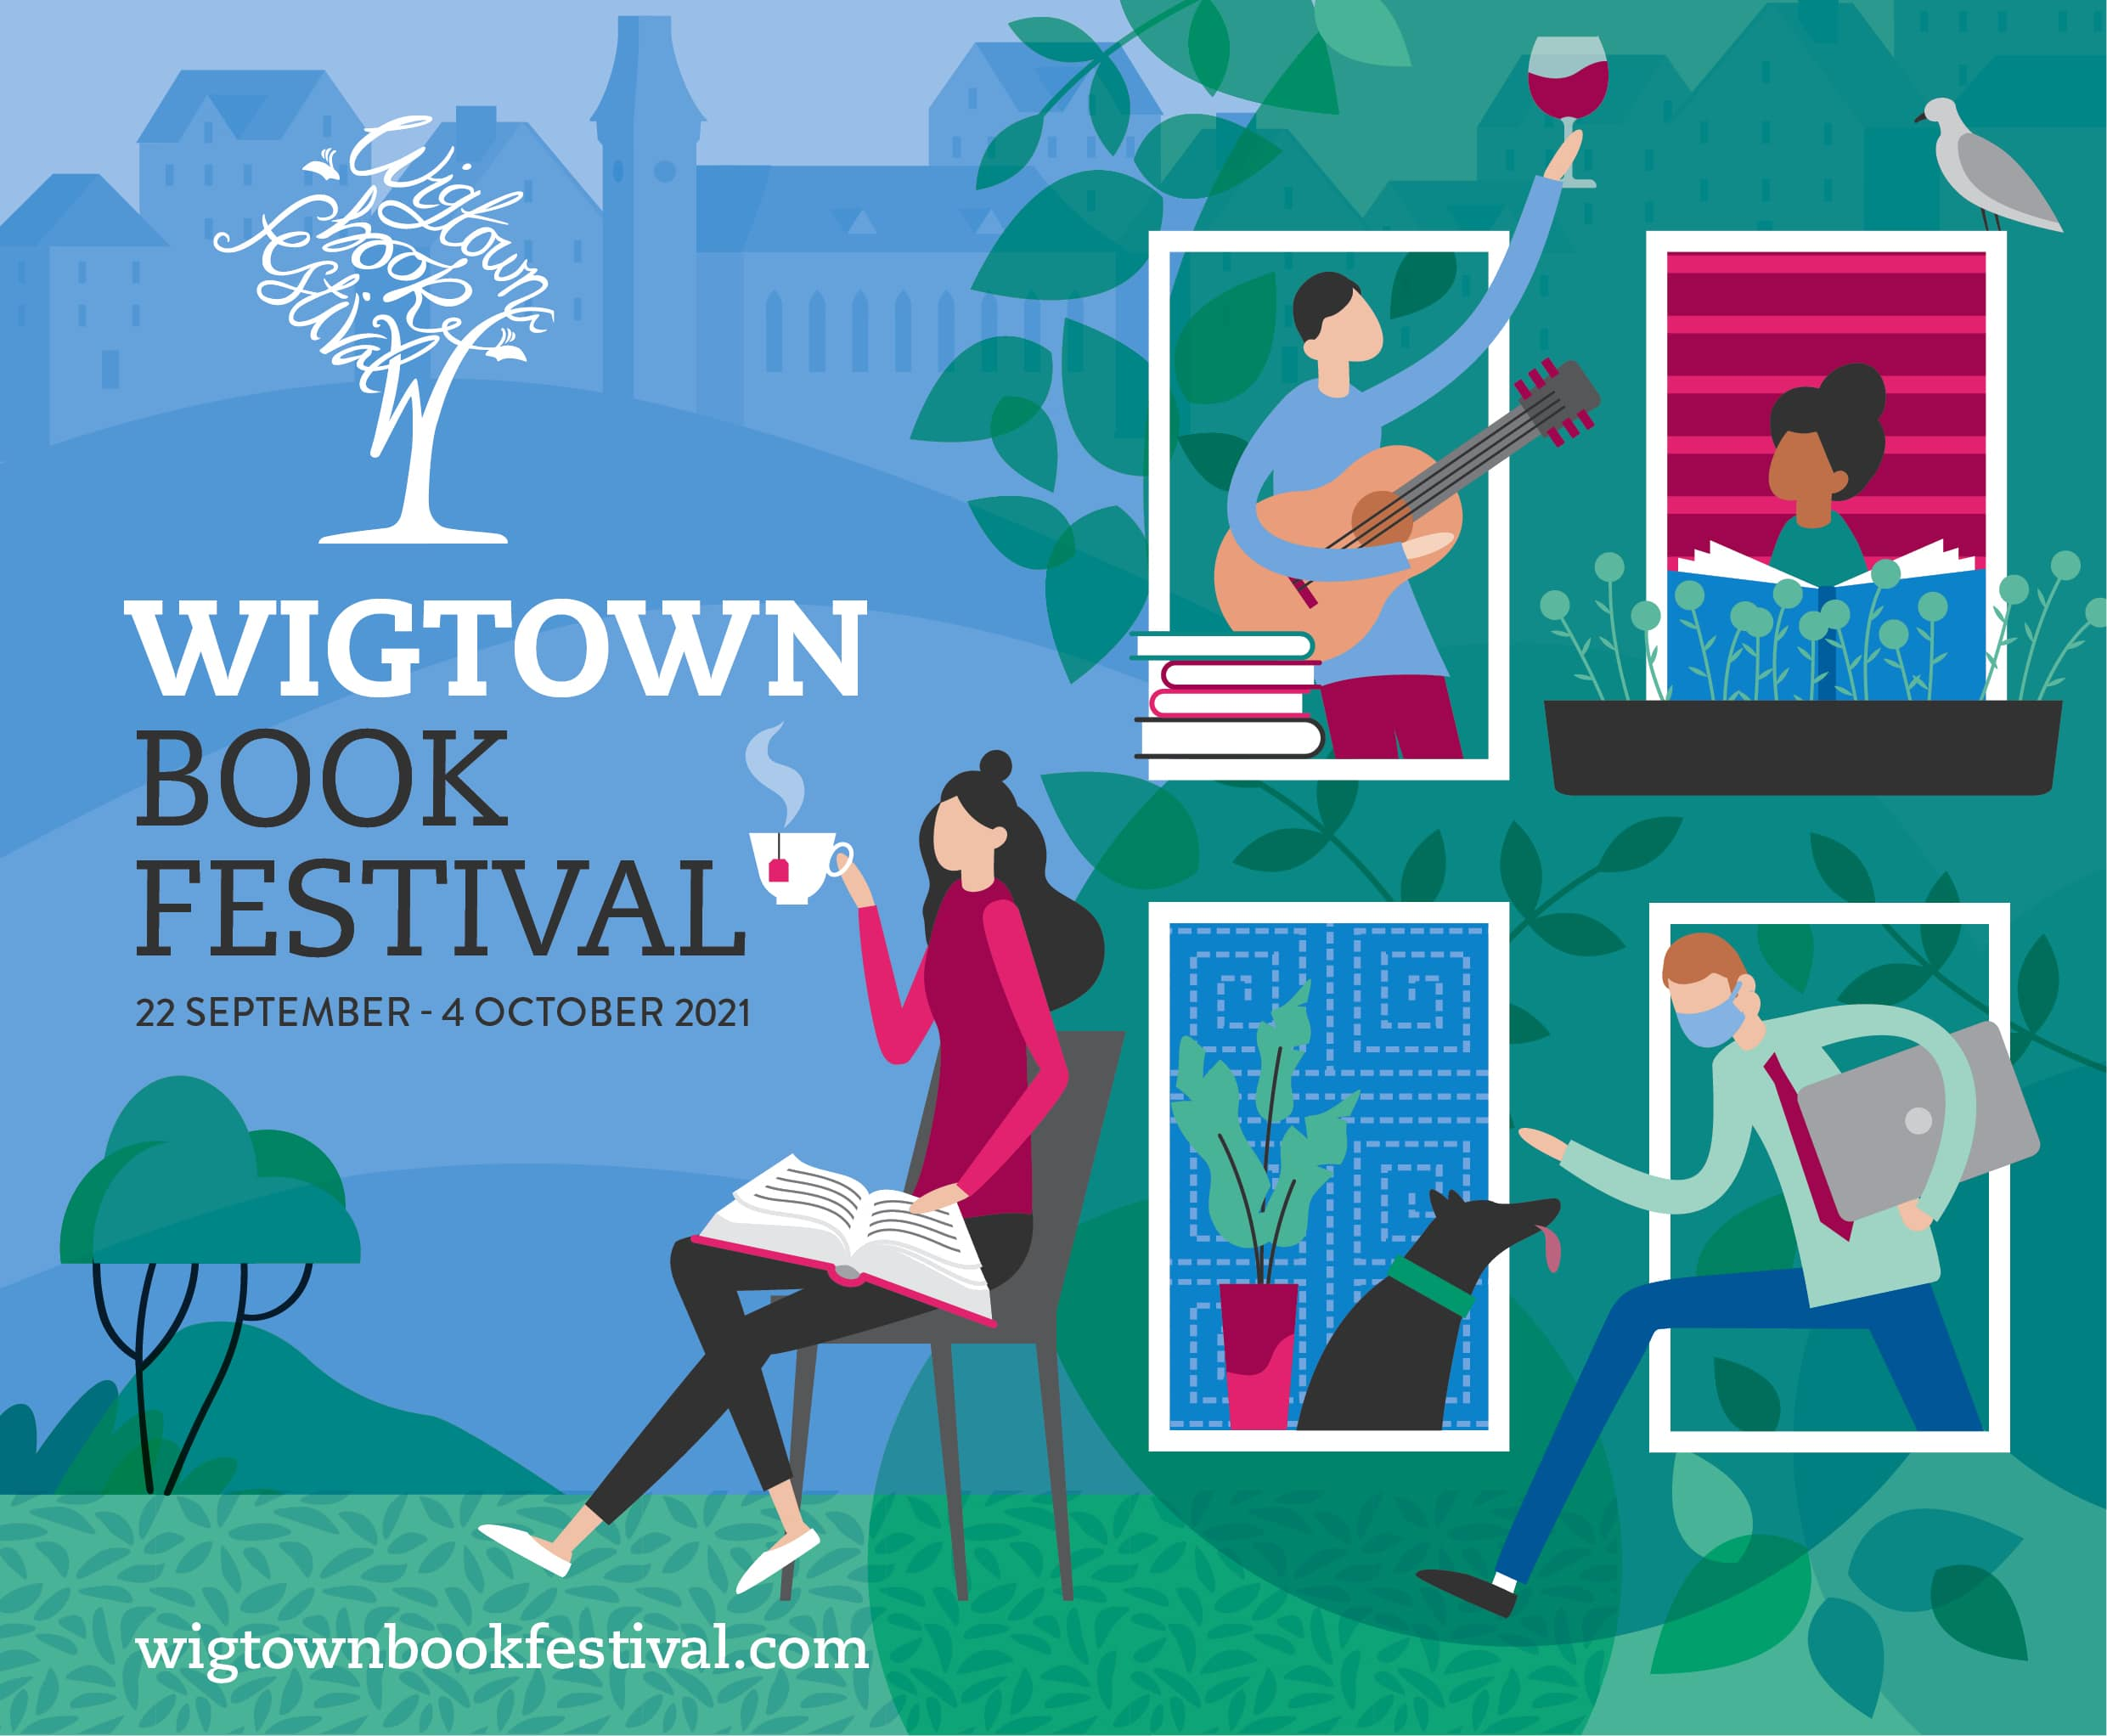 Wigtown Book Festival appeal